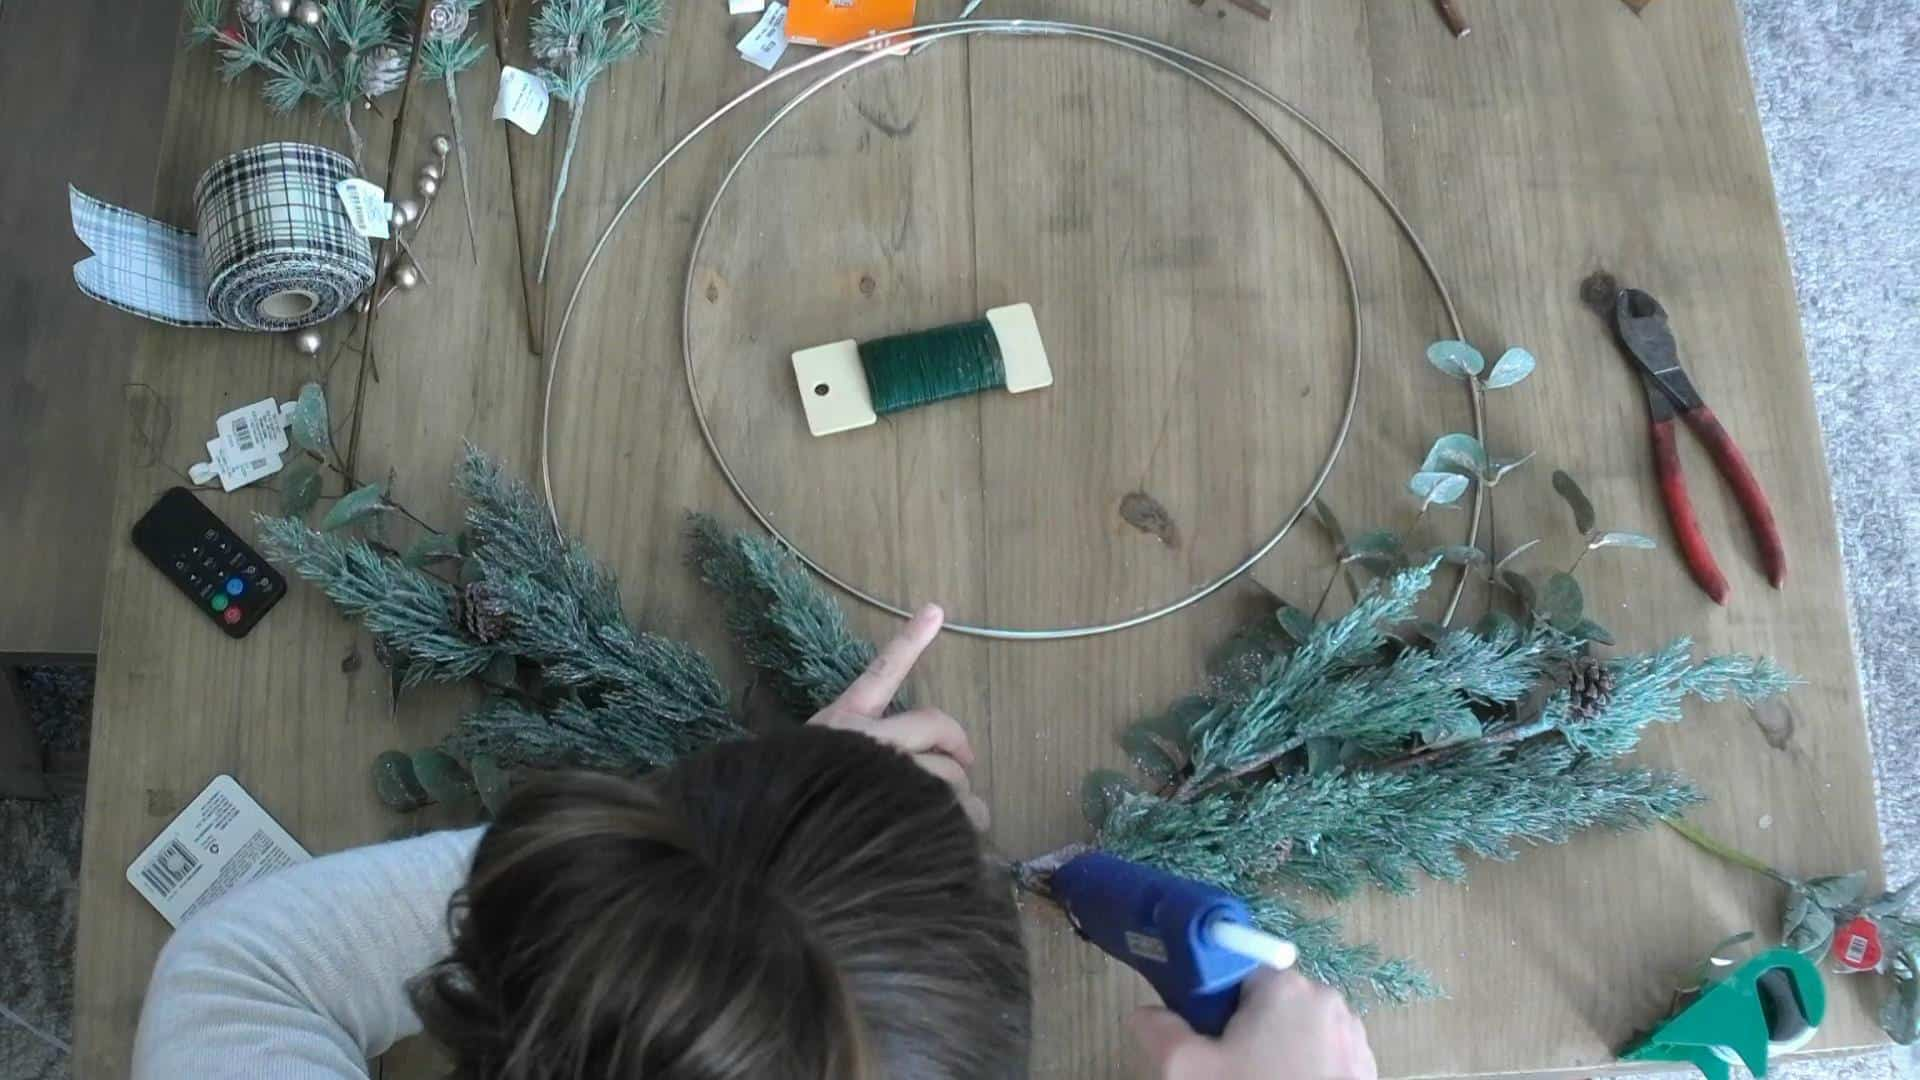 Hot gluing the DIY christmas wreath